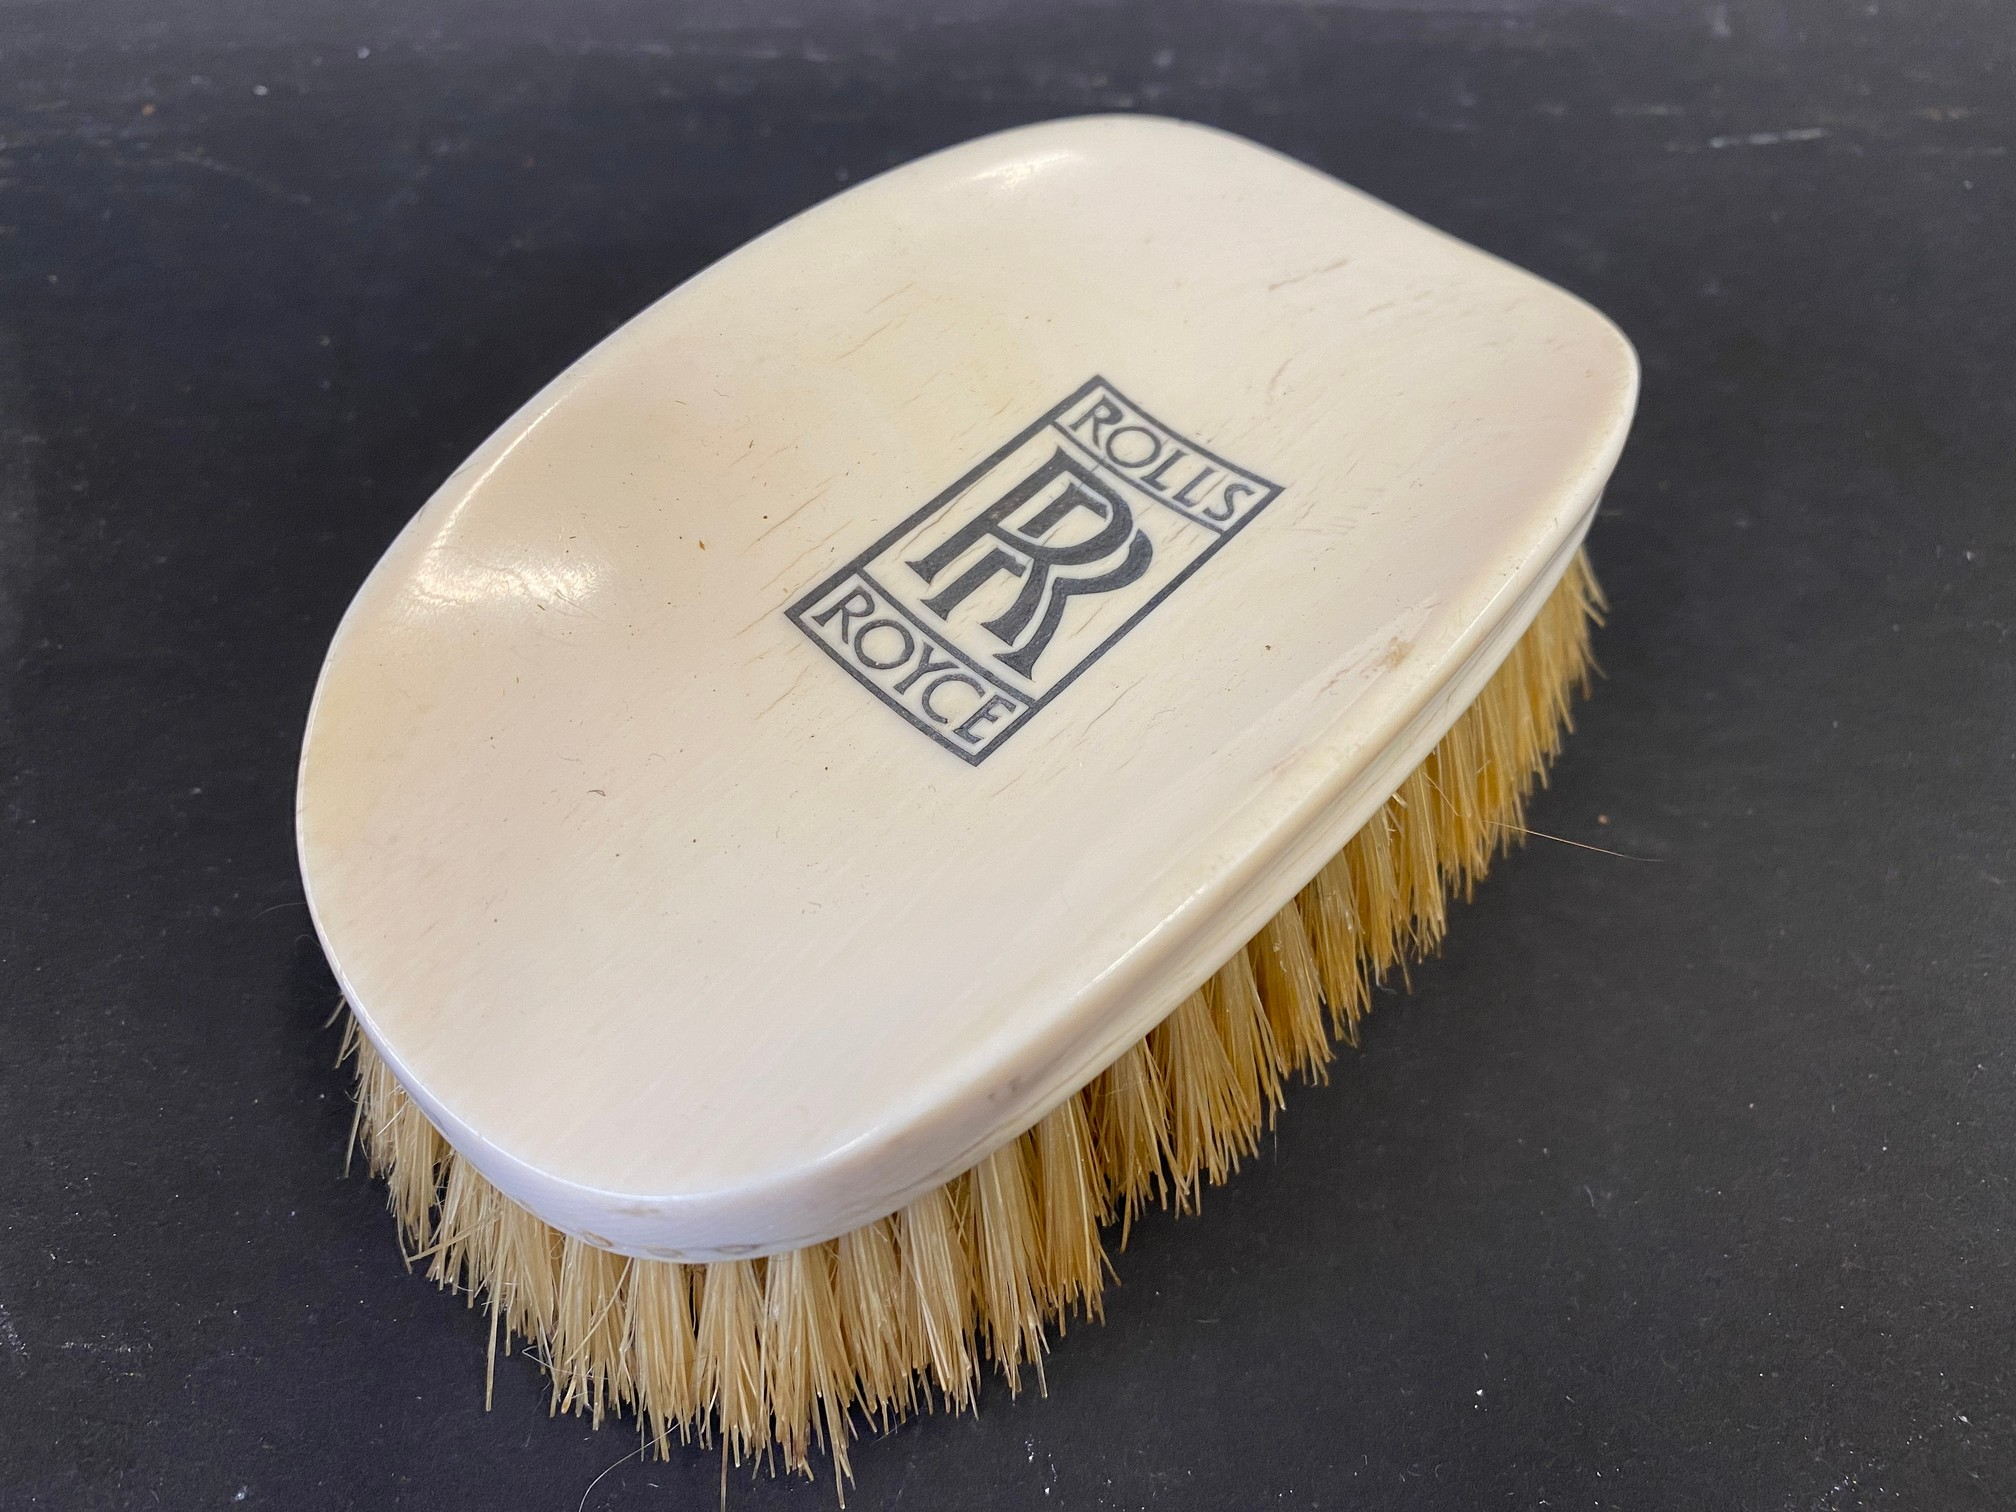 A Rolls-Royce clothes brush, stamped Harrods of London, Made in England.